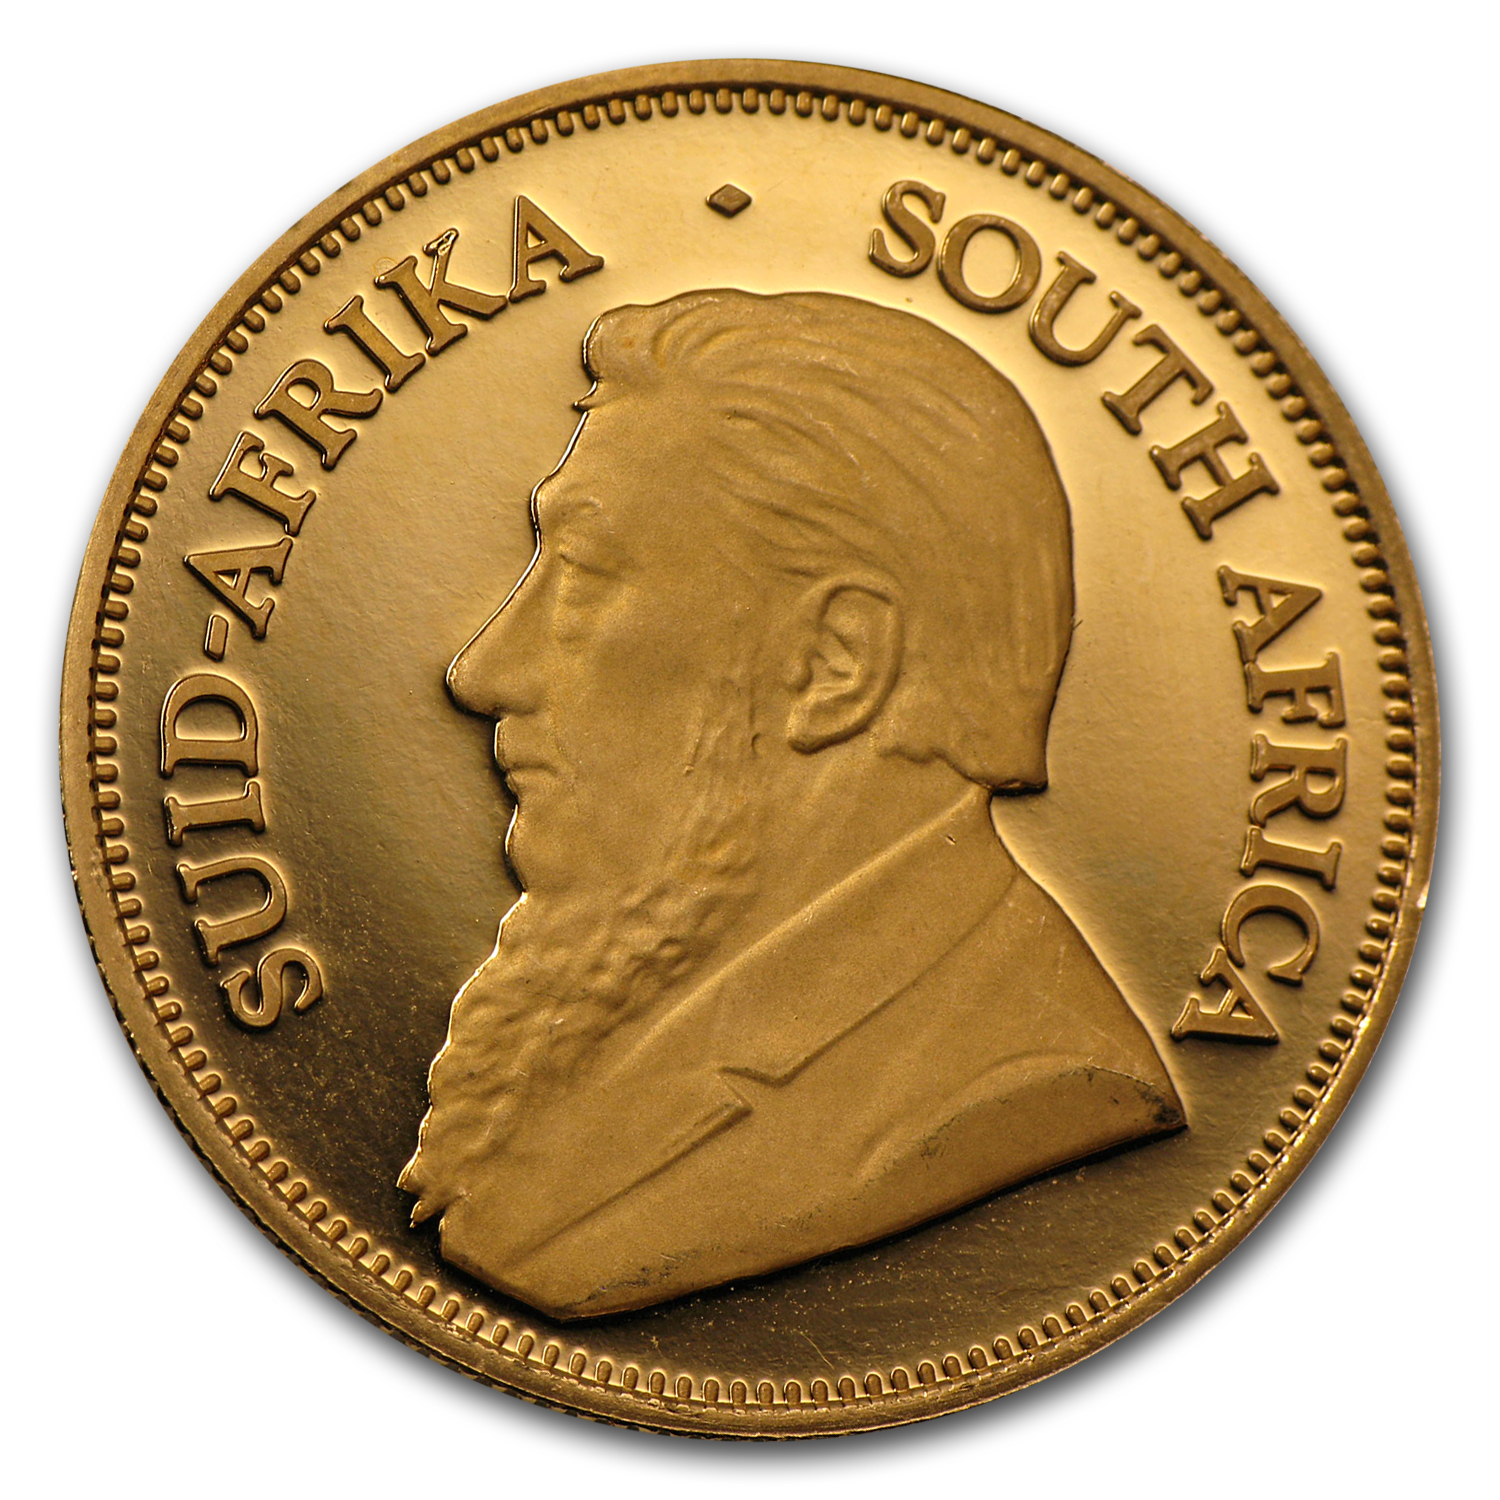 2006 1/2 oz Gold South African Krugerrand (Proof)